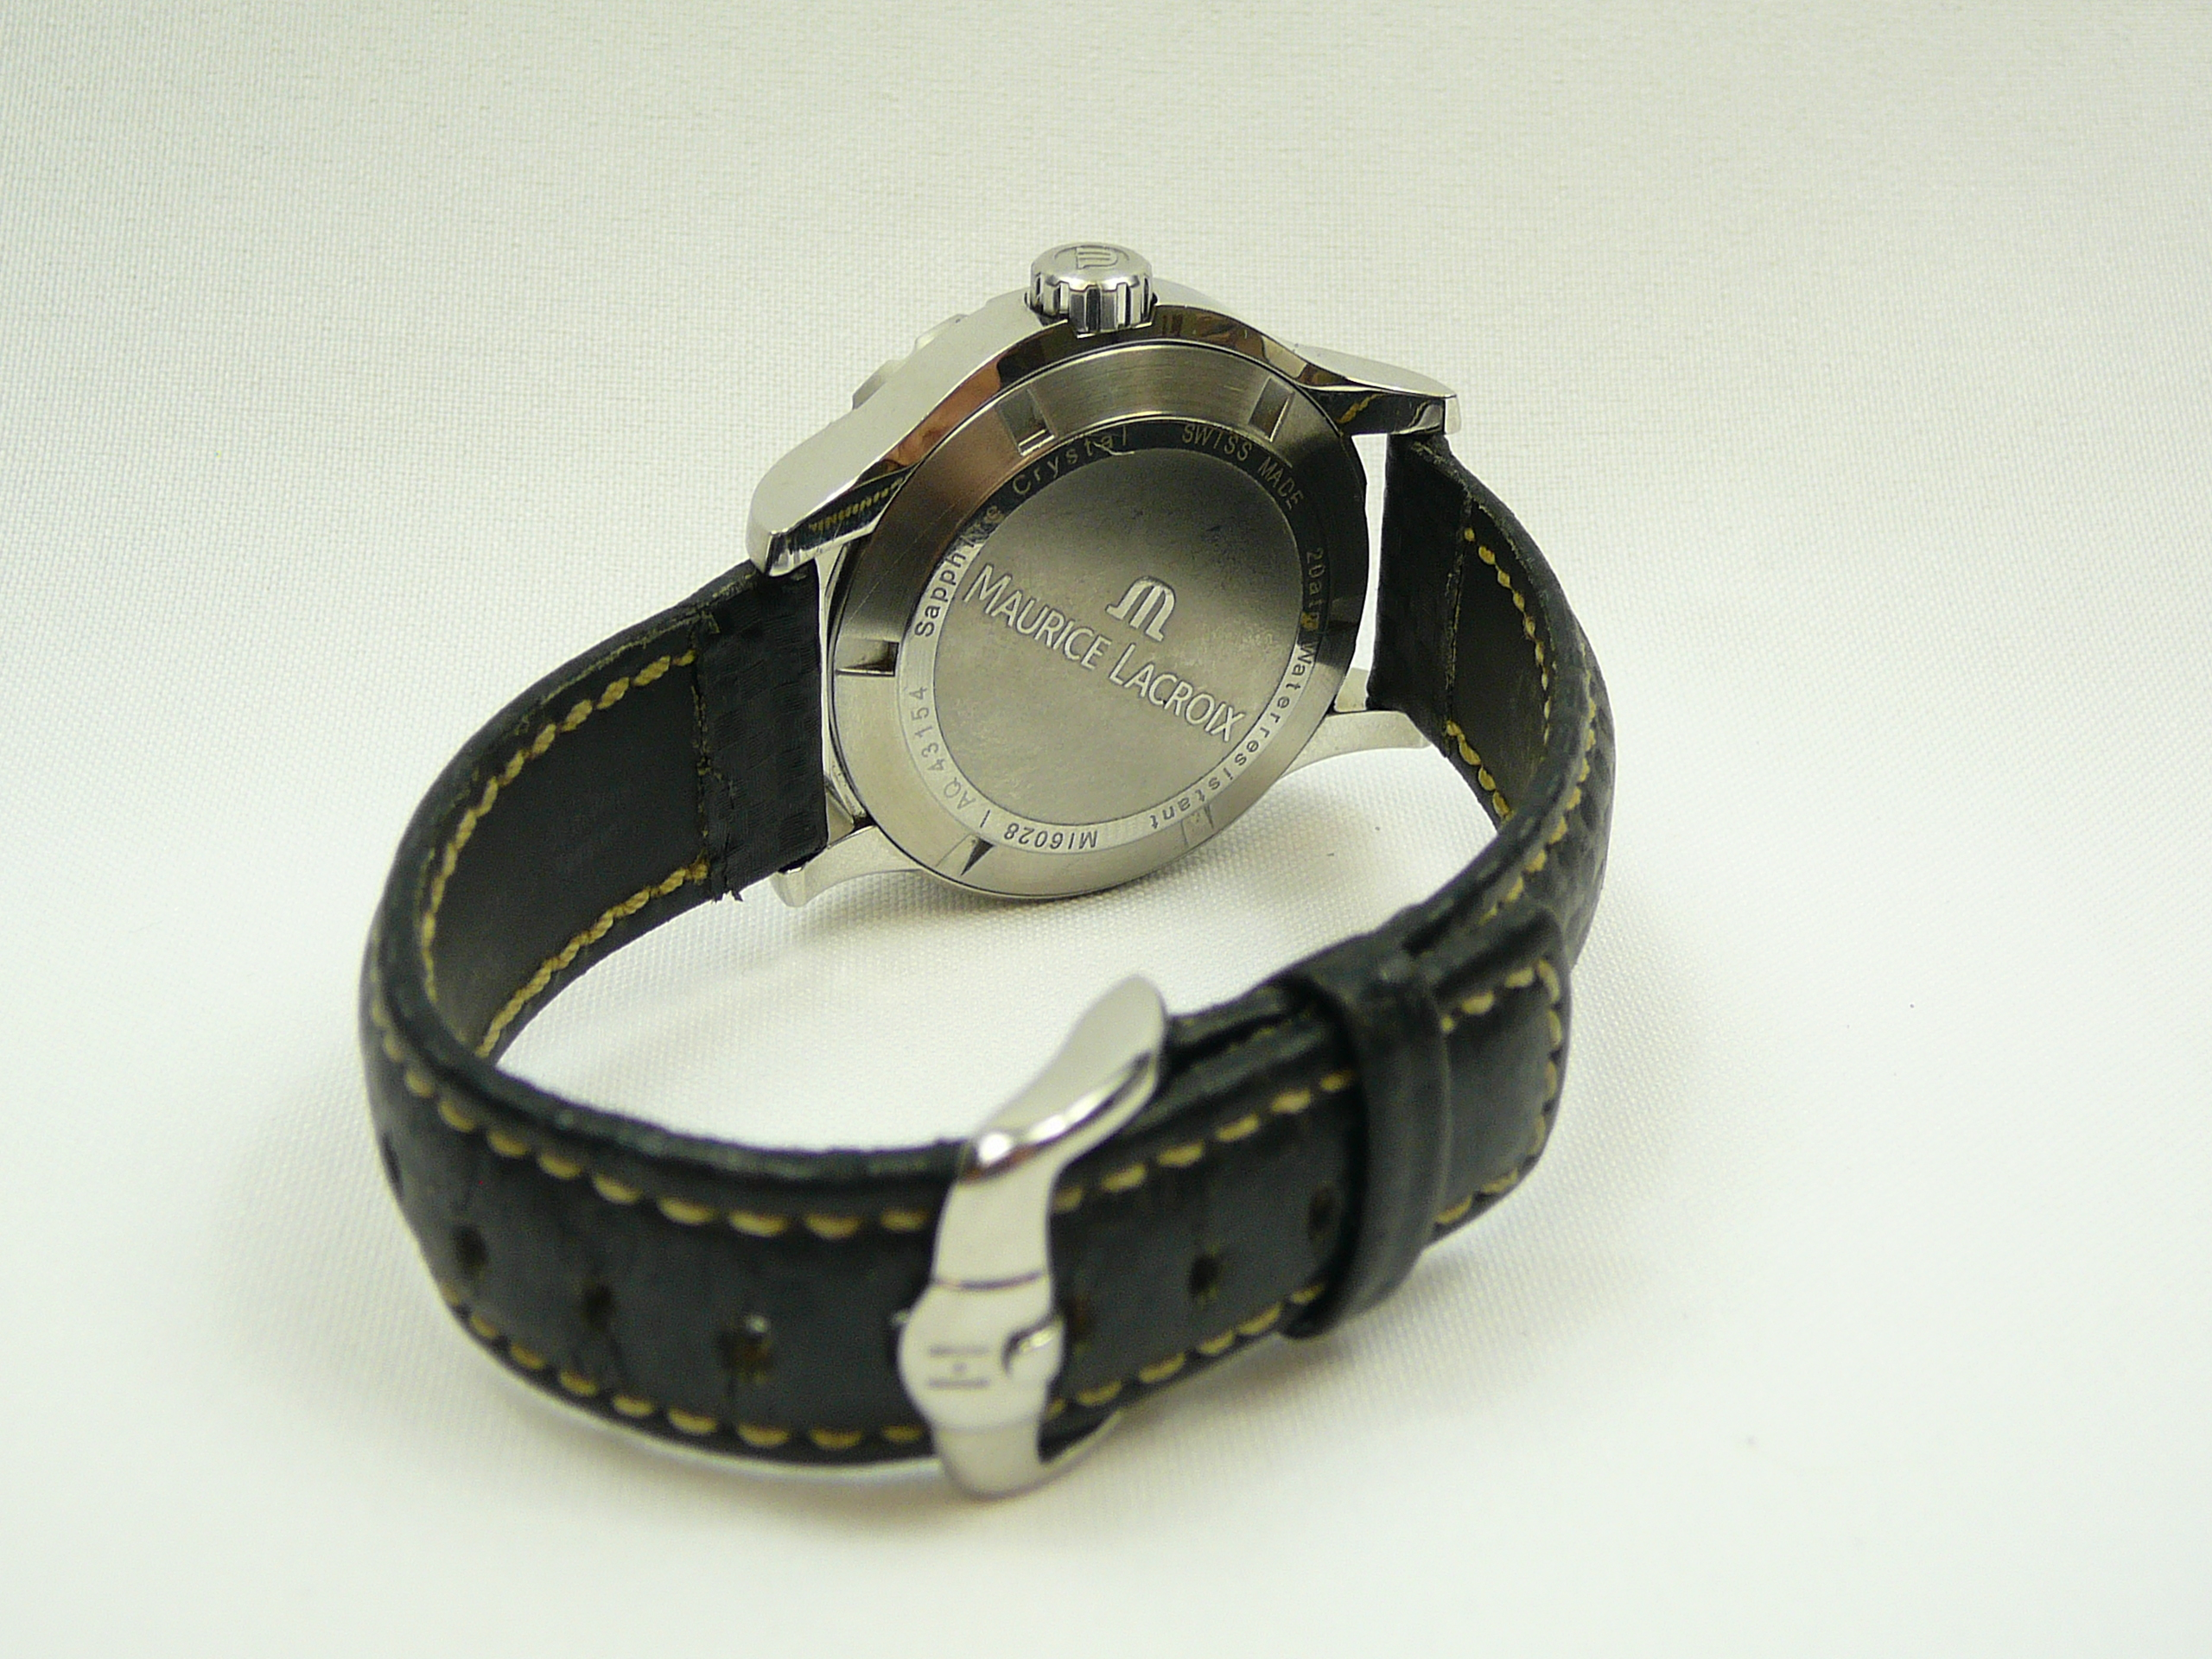 Gents Maurice Lacroix Wrist Watch - Image 3 of 3